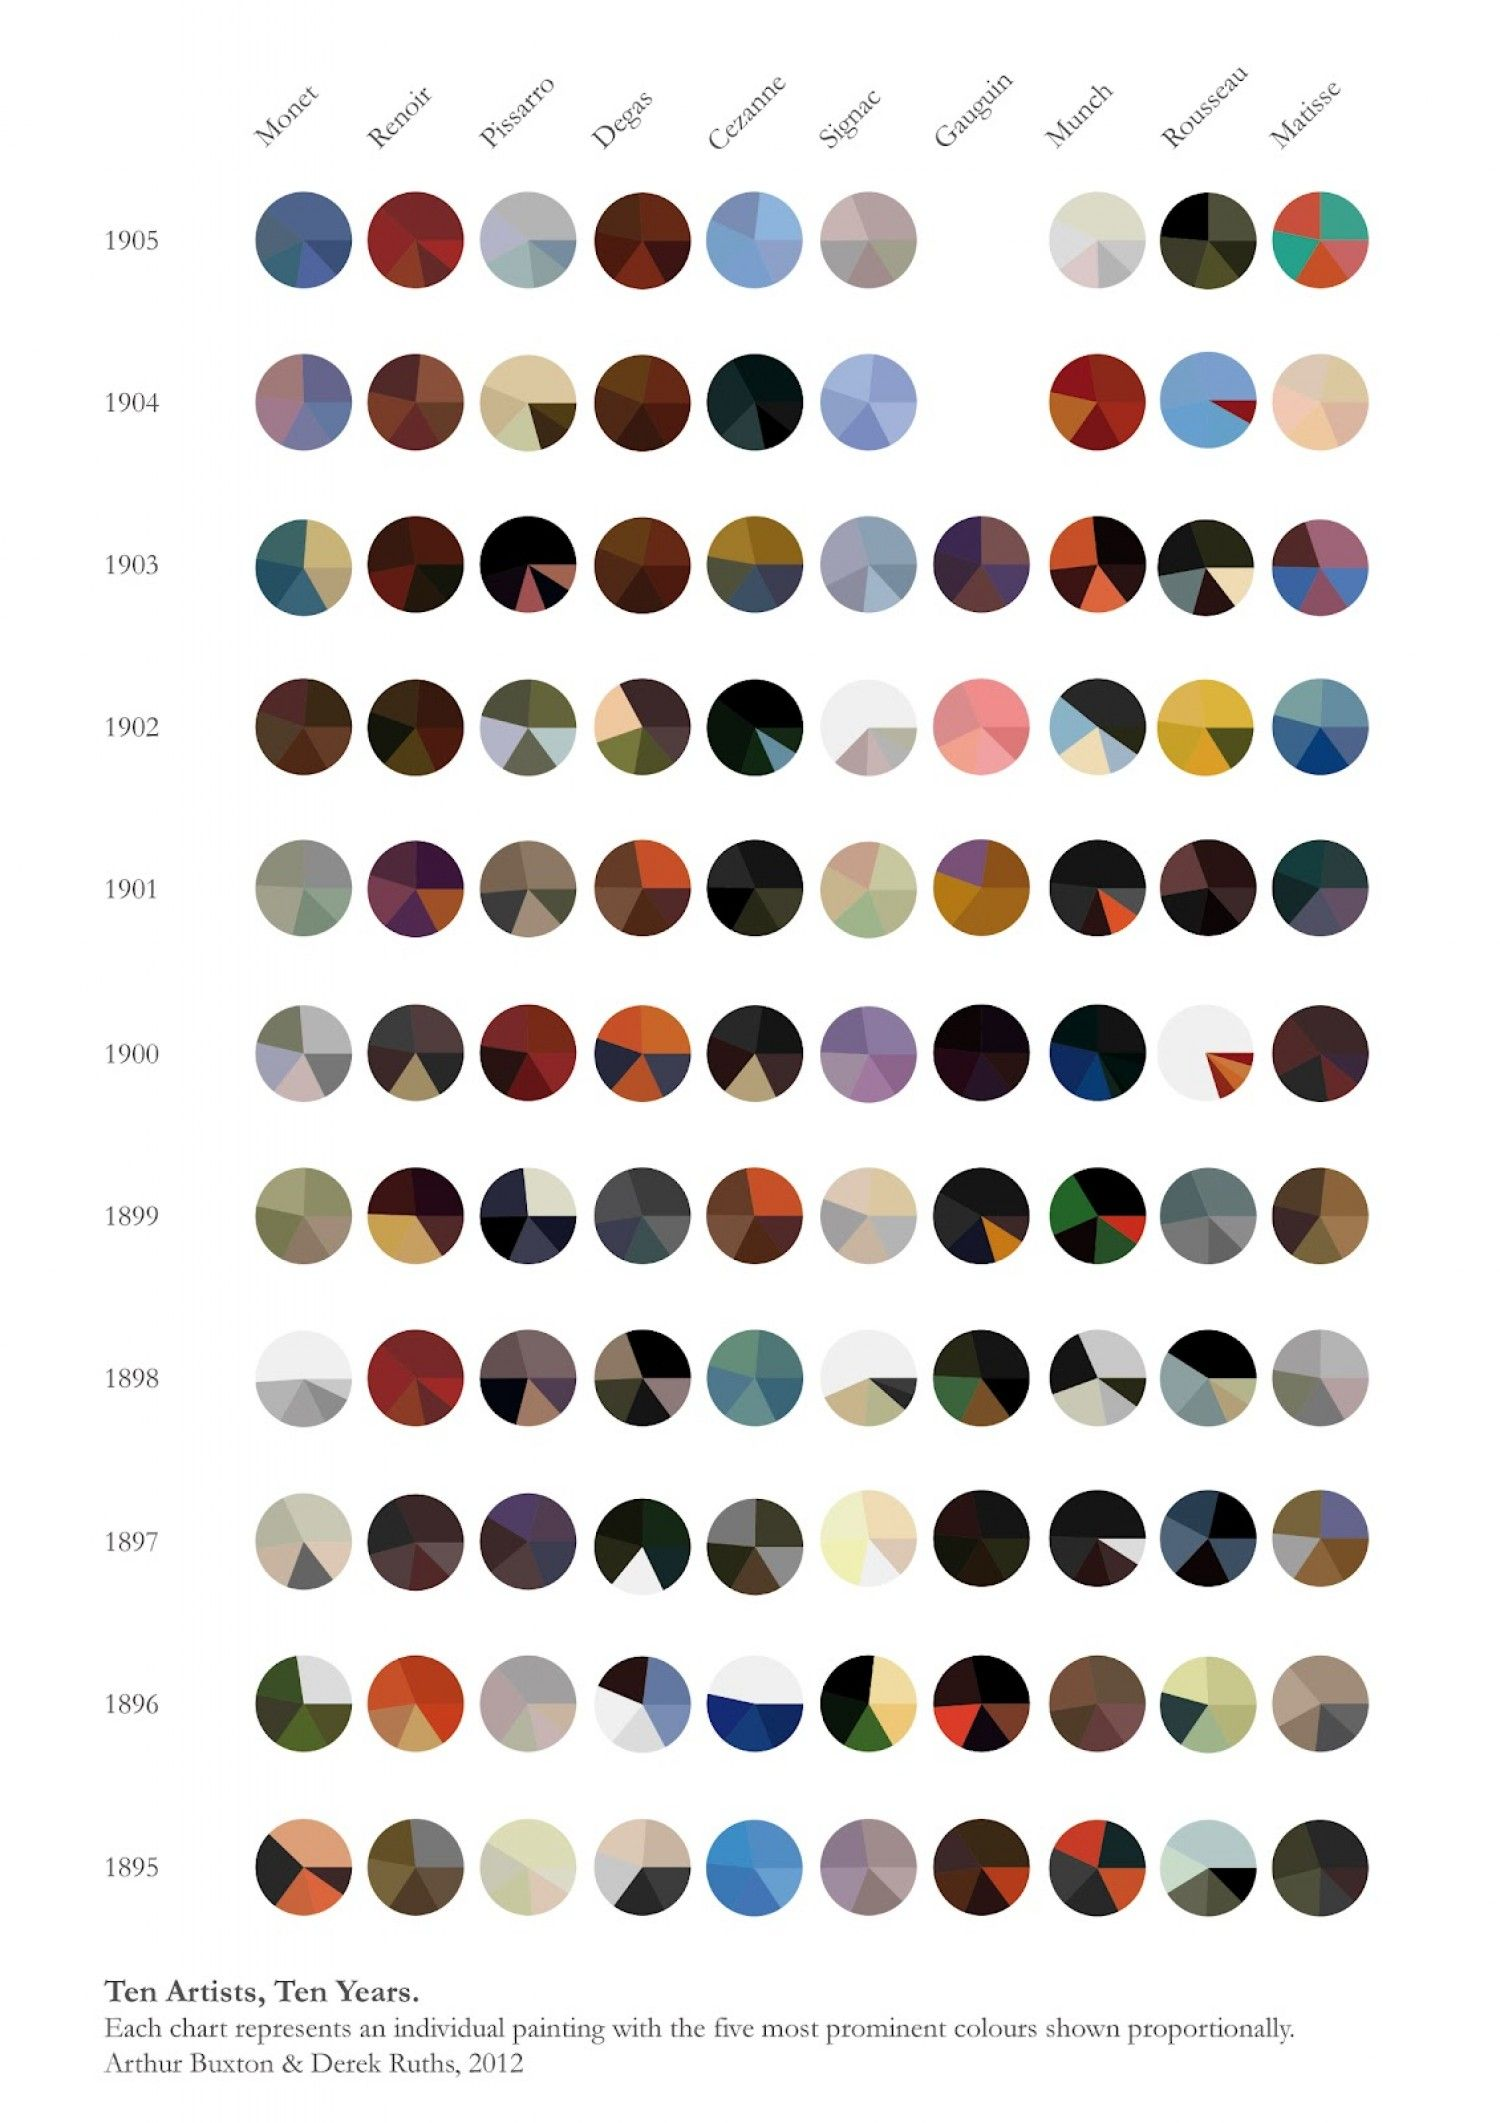 Color palettes of famous artists, visualized as pie charts